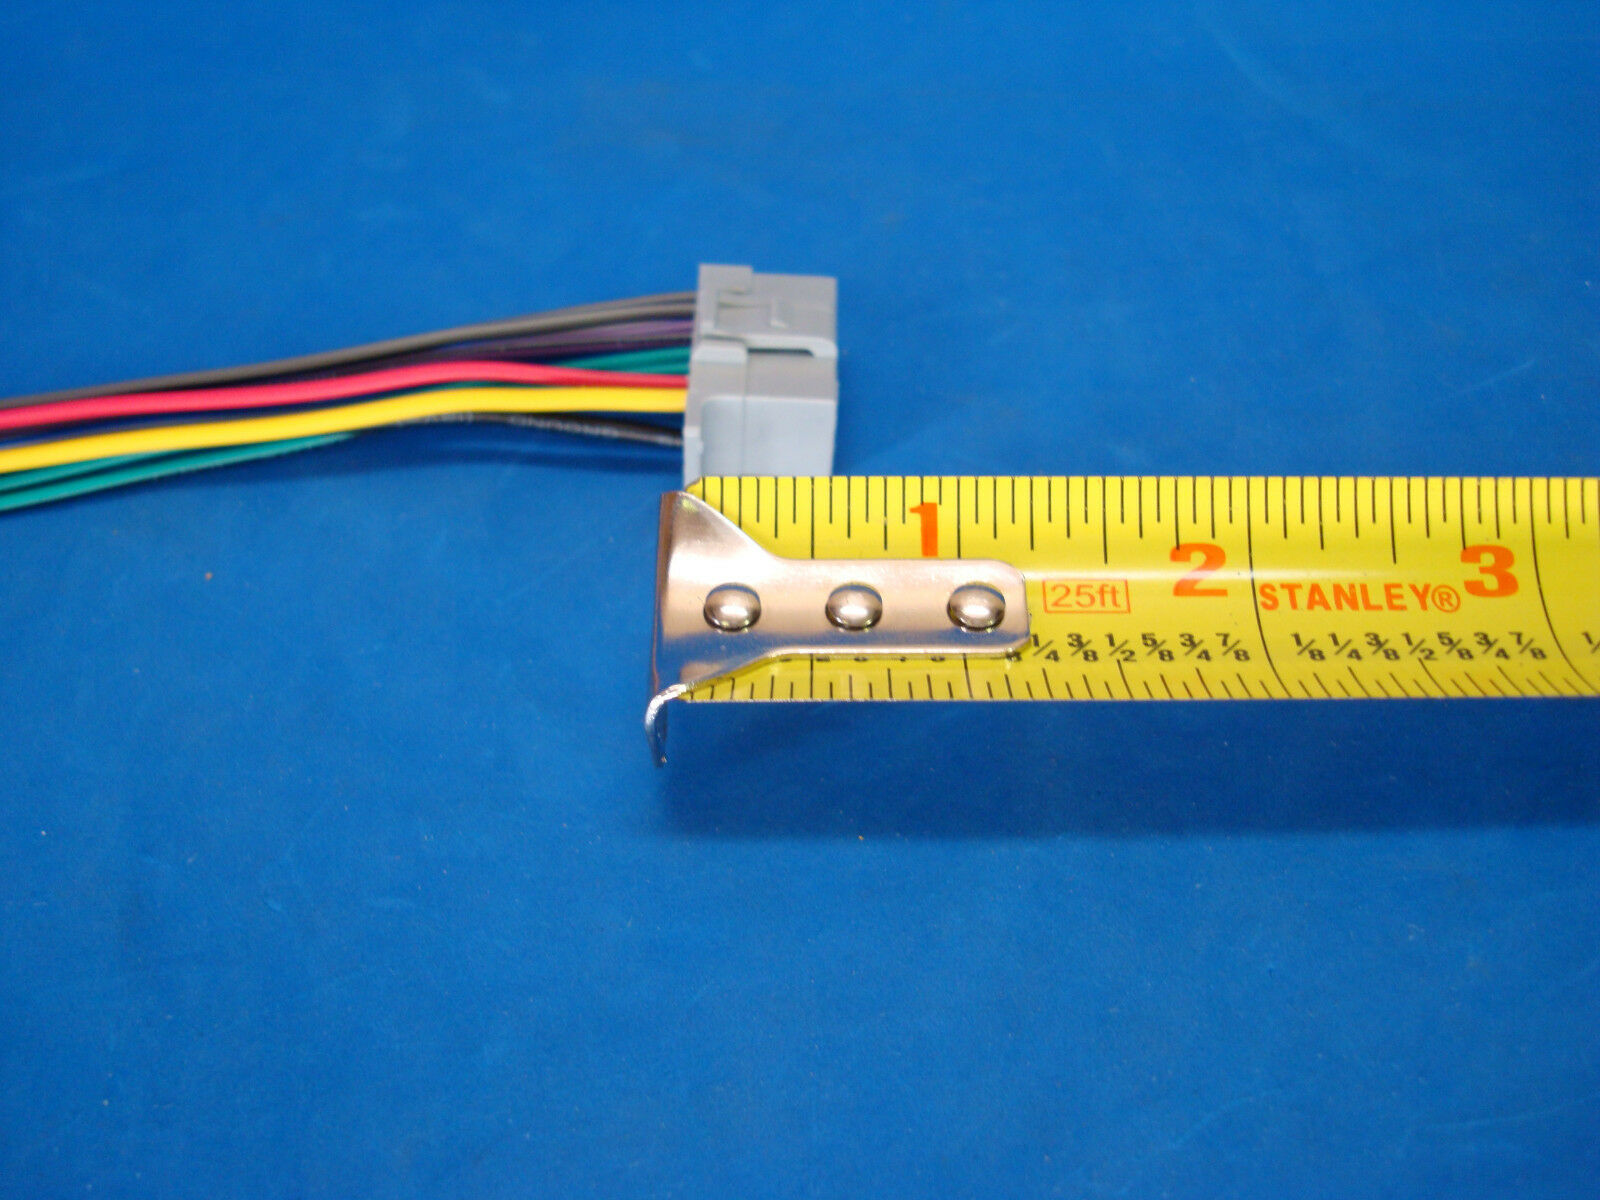 hight resolution of panasonic wire harness plug cq c1100u c8305u c7303u c5305u c7103u rx400u dfx693u for sale